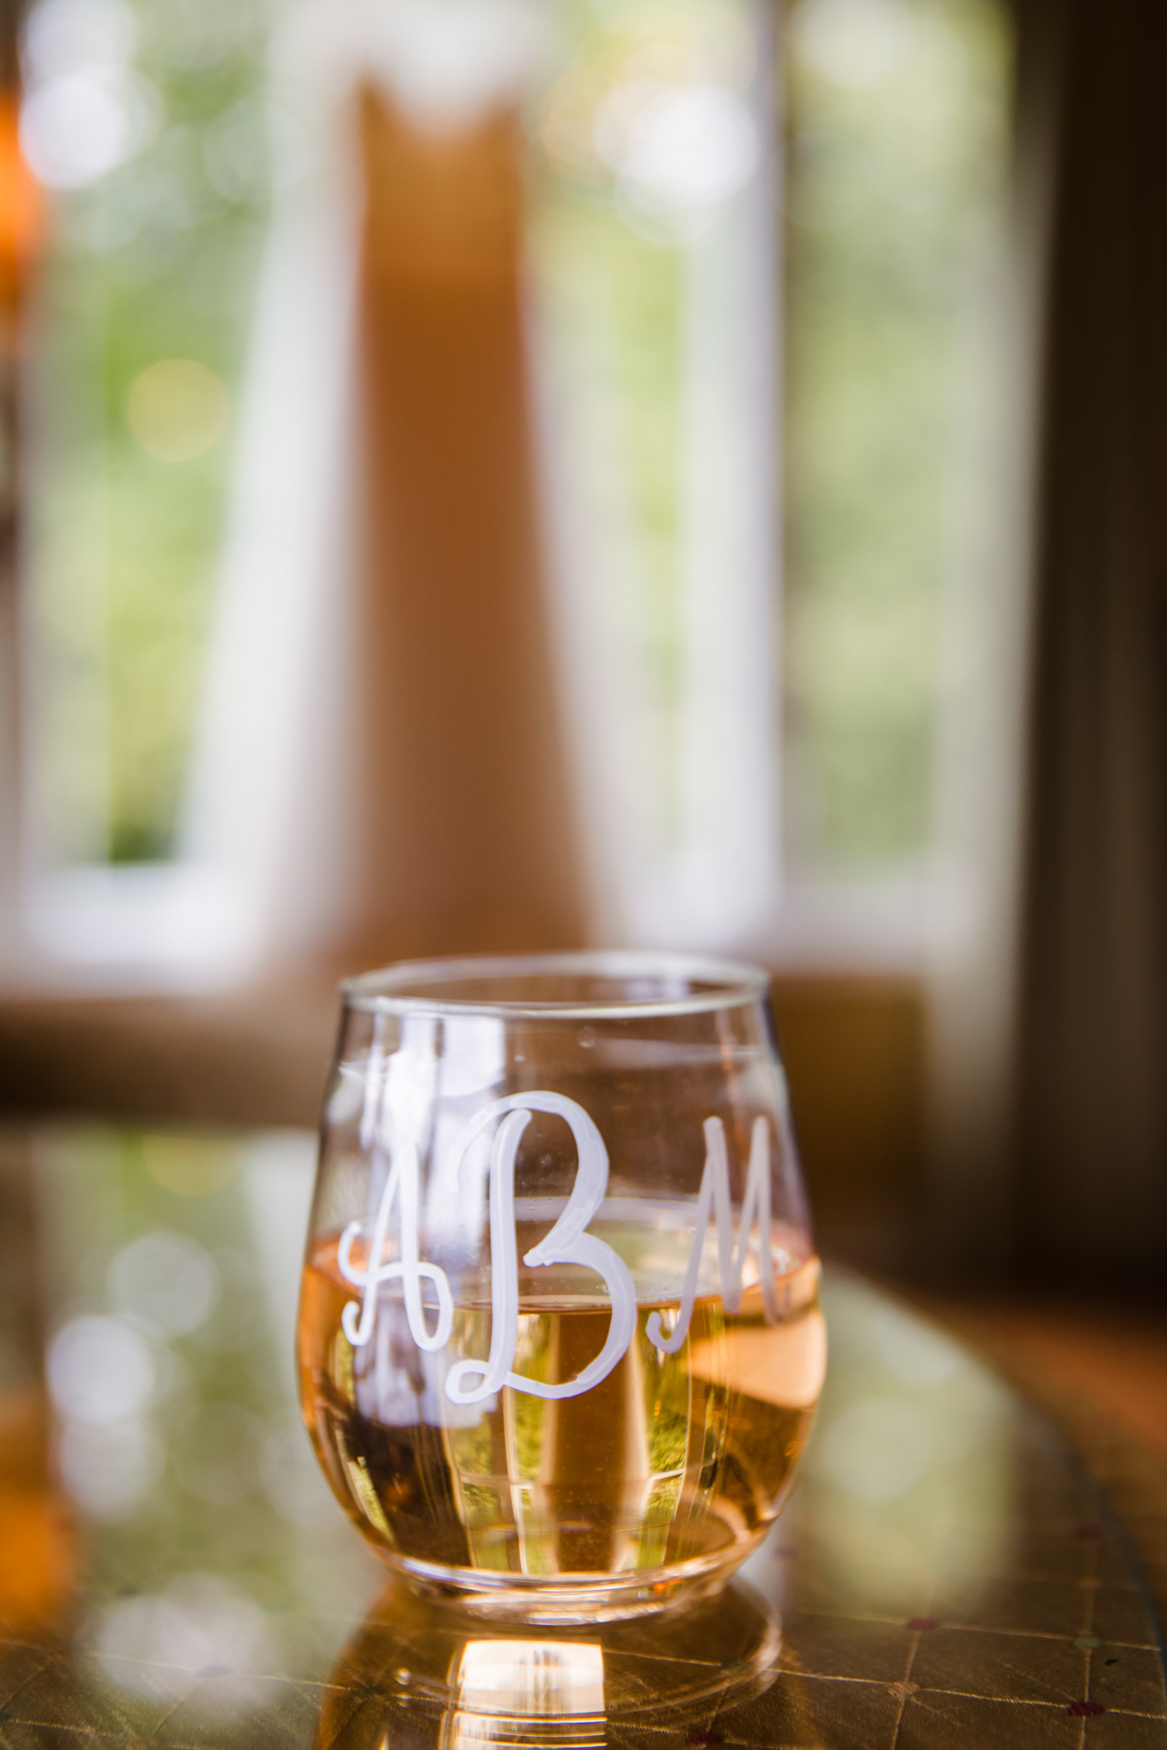 Bridal Detail Monogrammed Stemless Wine Glass Waynesville NC Wedding Photography Inn at Tranquility Farm